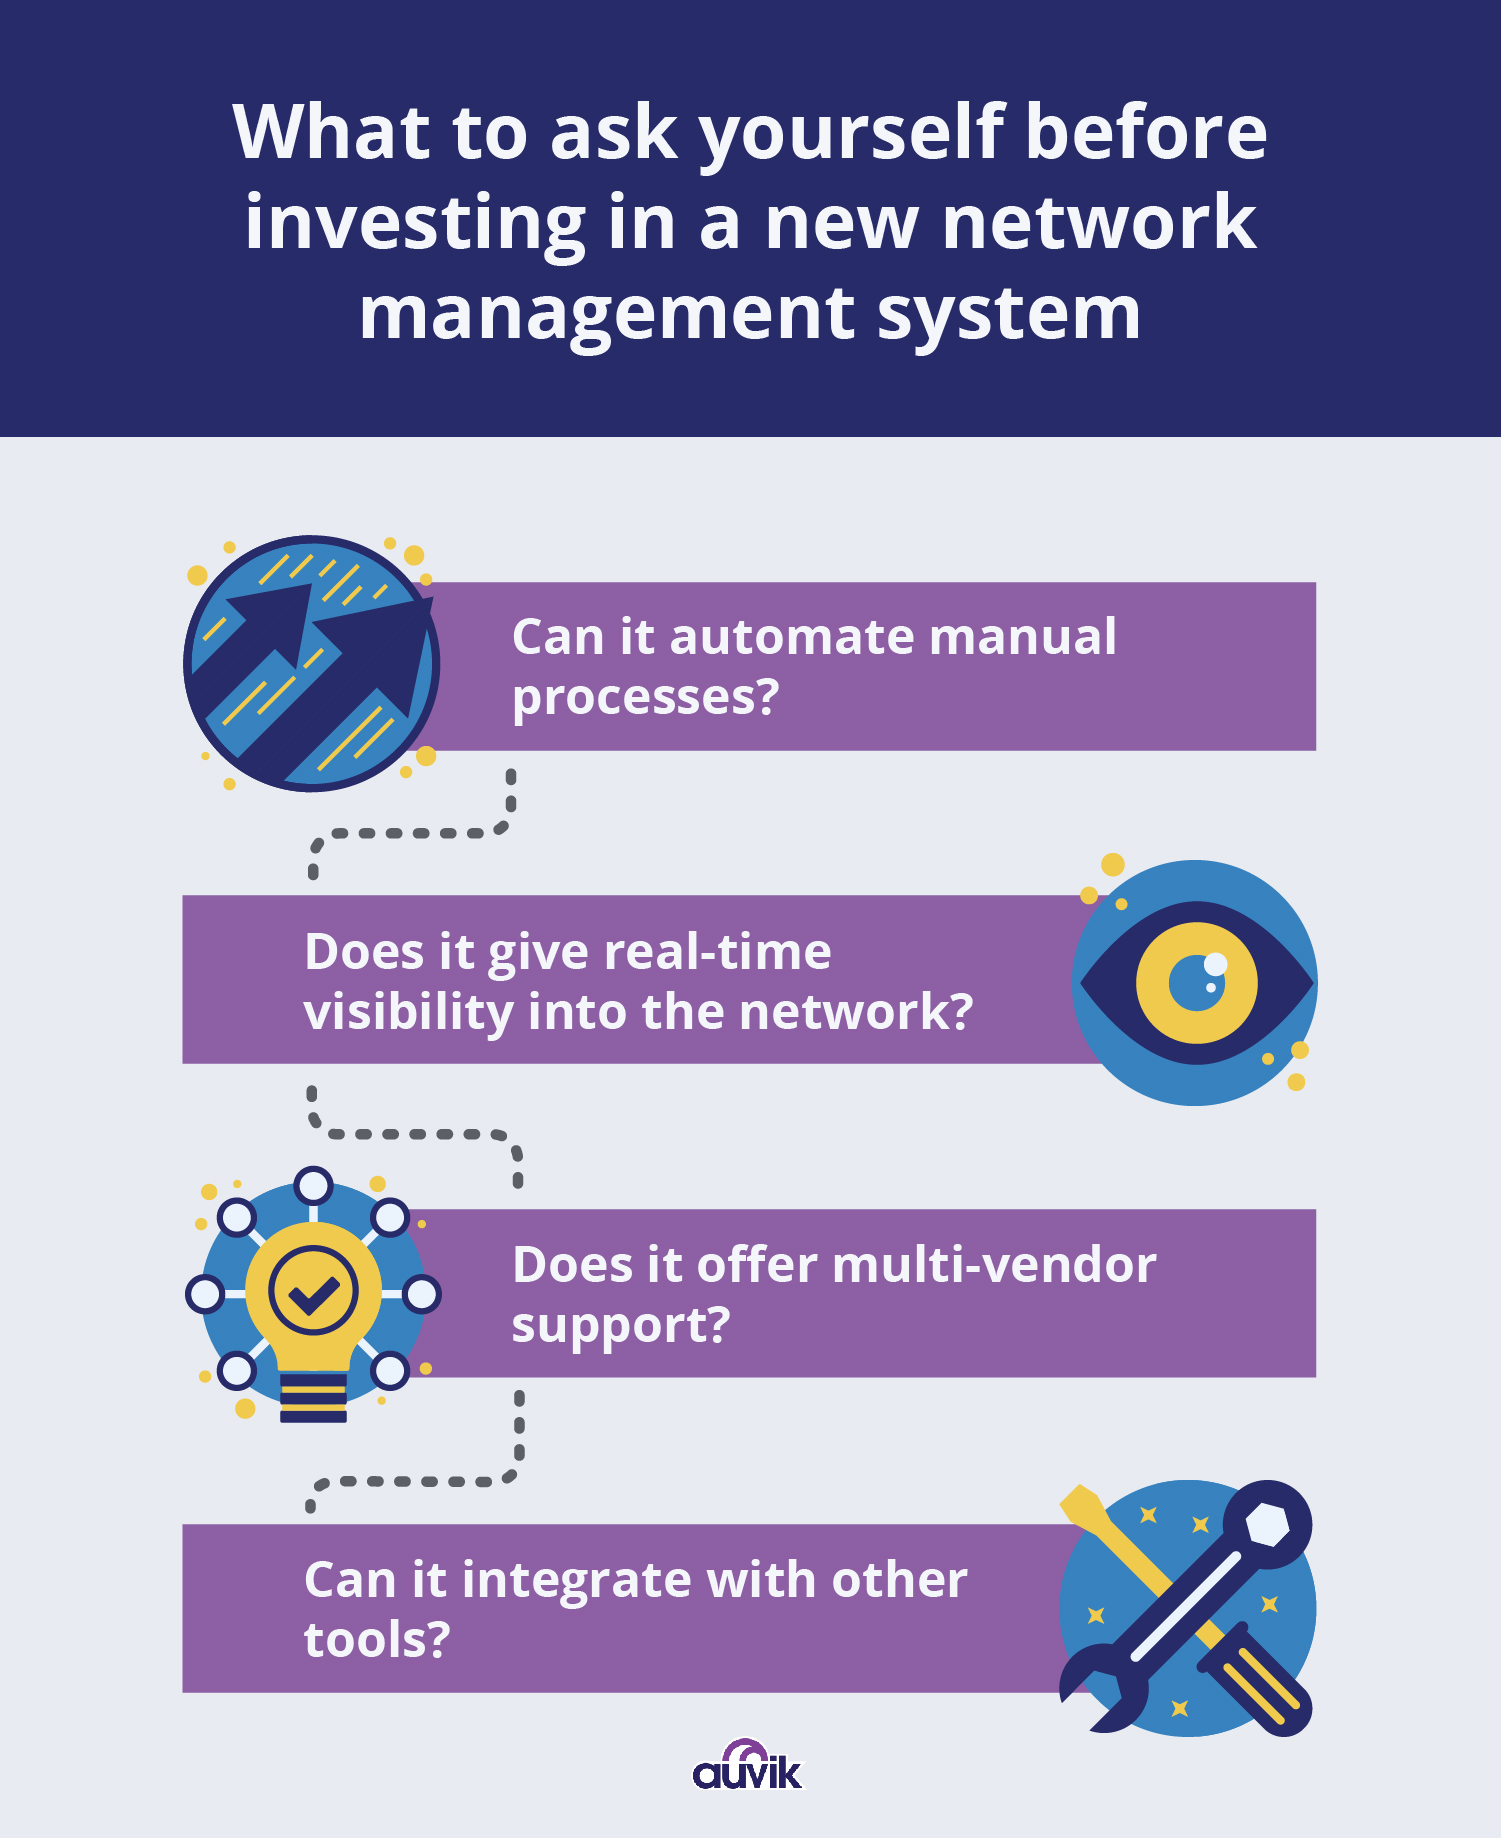 what to ask yourself before investing in a new network management system infographic